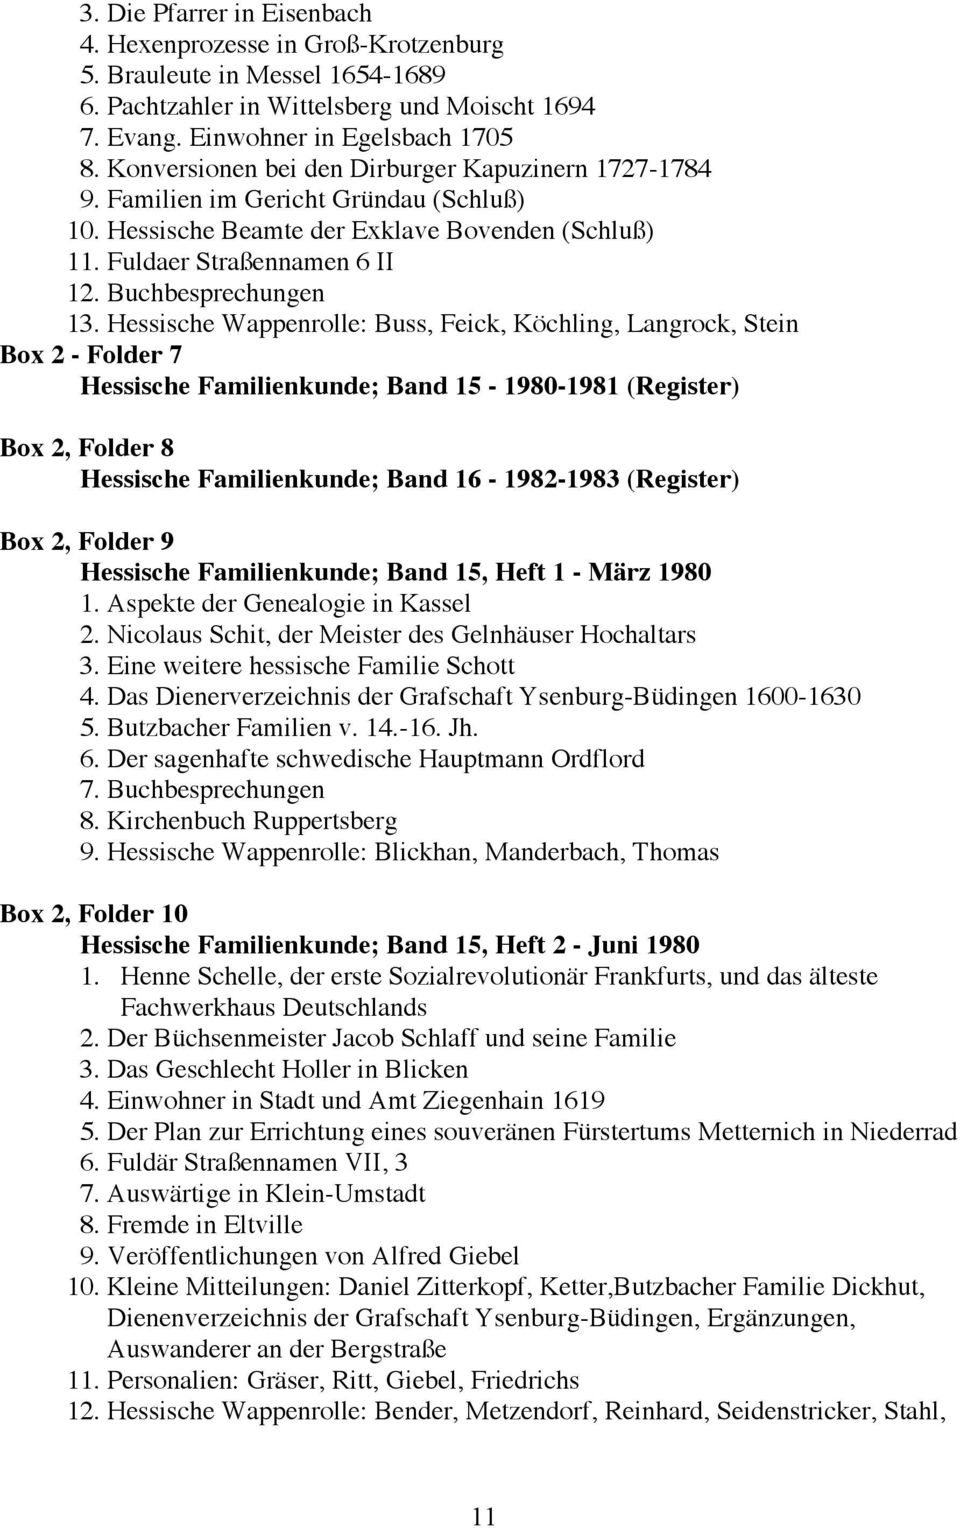 Hessische Wappenrolle: Buss, Feick, Köchling, Langrock, Stein Box 2 - Folder 7 Hessische Familienkunde; Band 15-1980-1981 (Register) Box 2, Folder 8 Hessische Familienkunde; Band 16-1982-1983